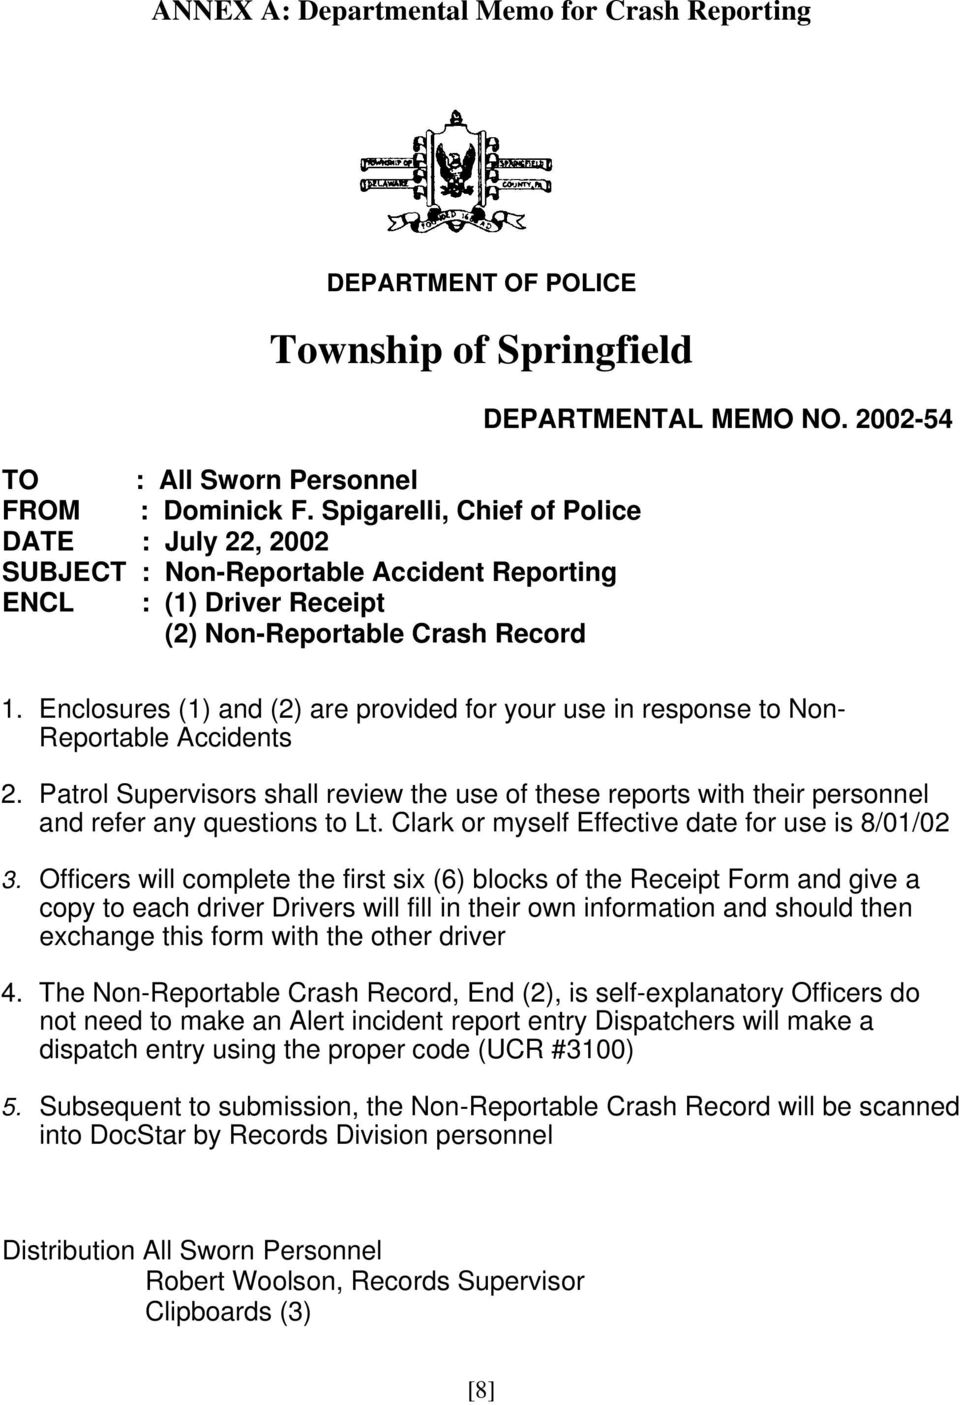 NON-REPORTABLE VEHICLE CRASH REPORTS FOR THE SPRINGFIELD POLICE